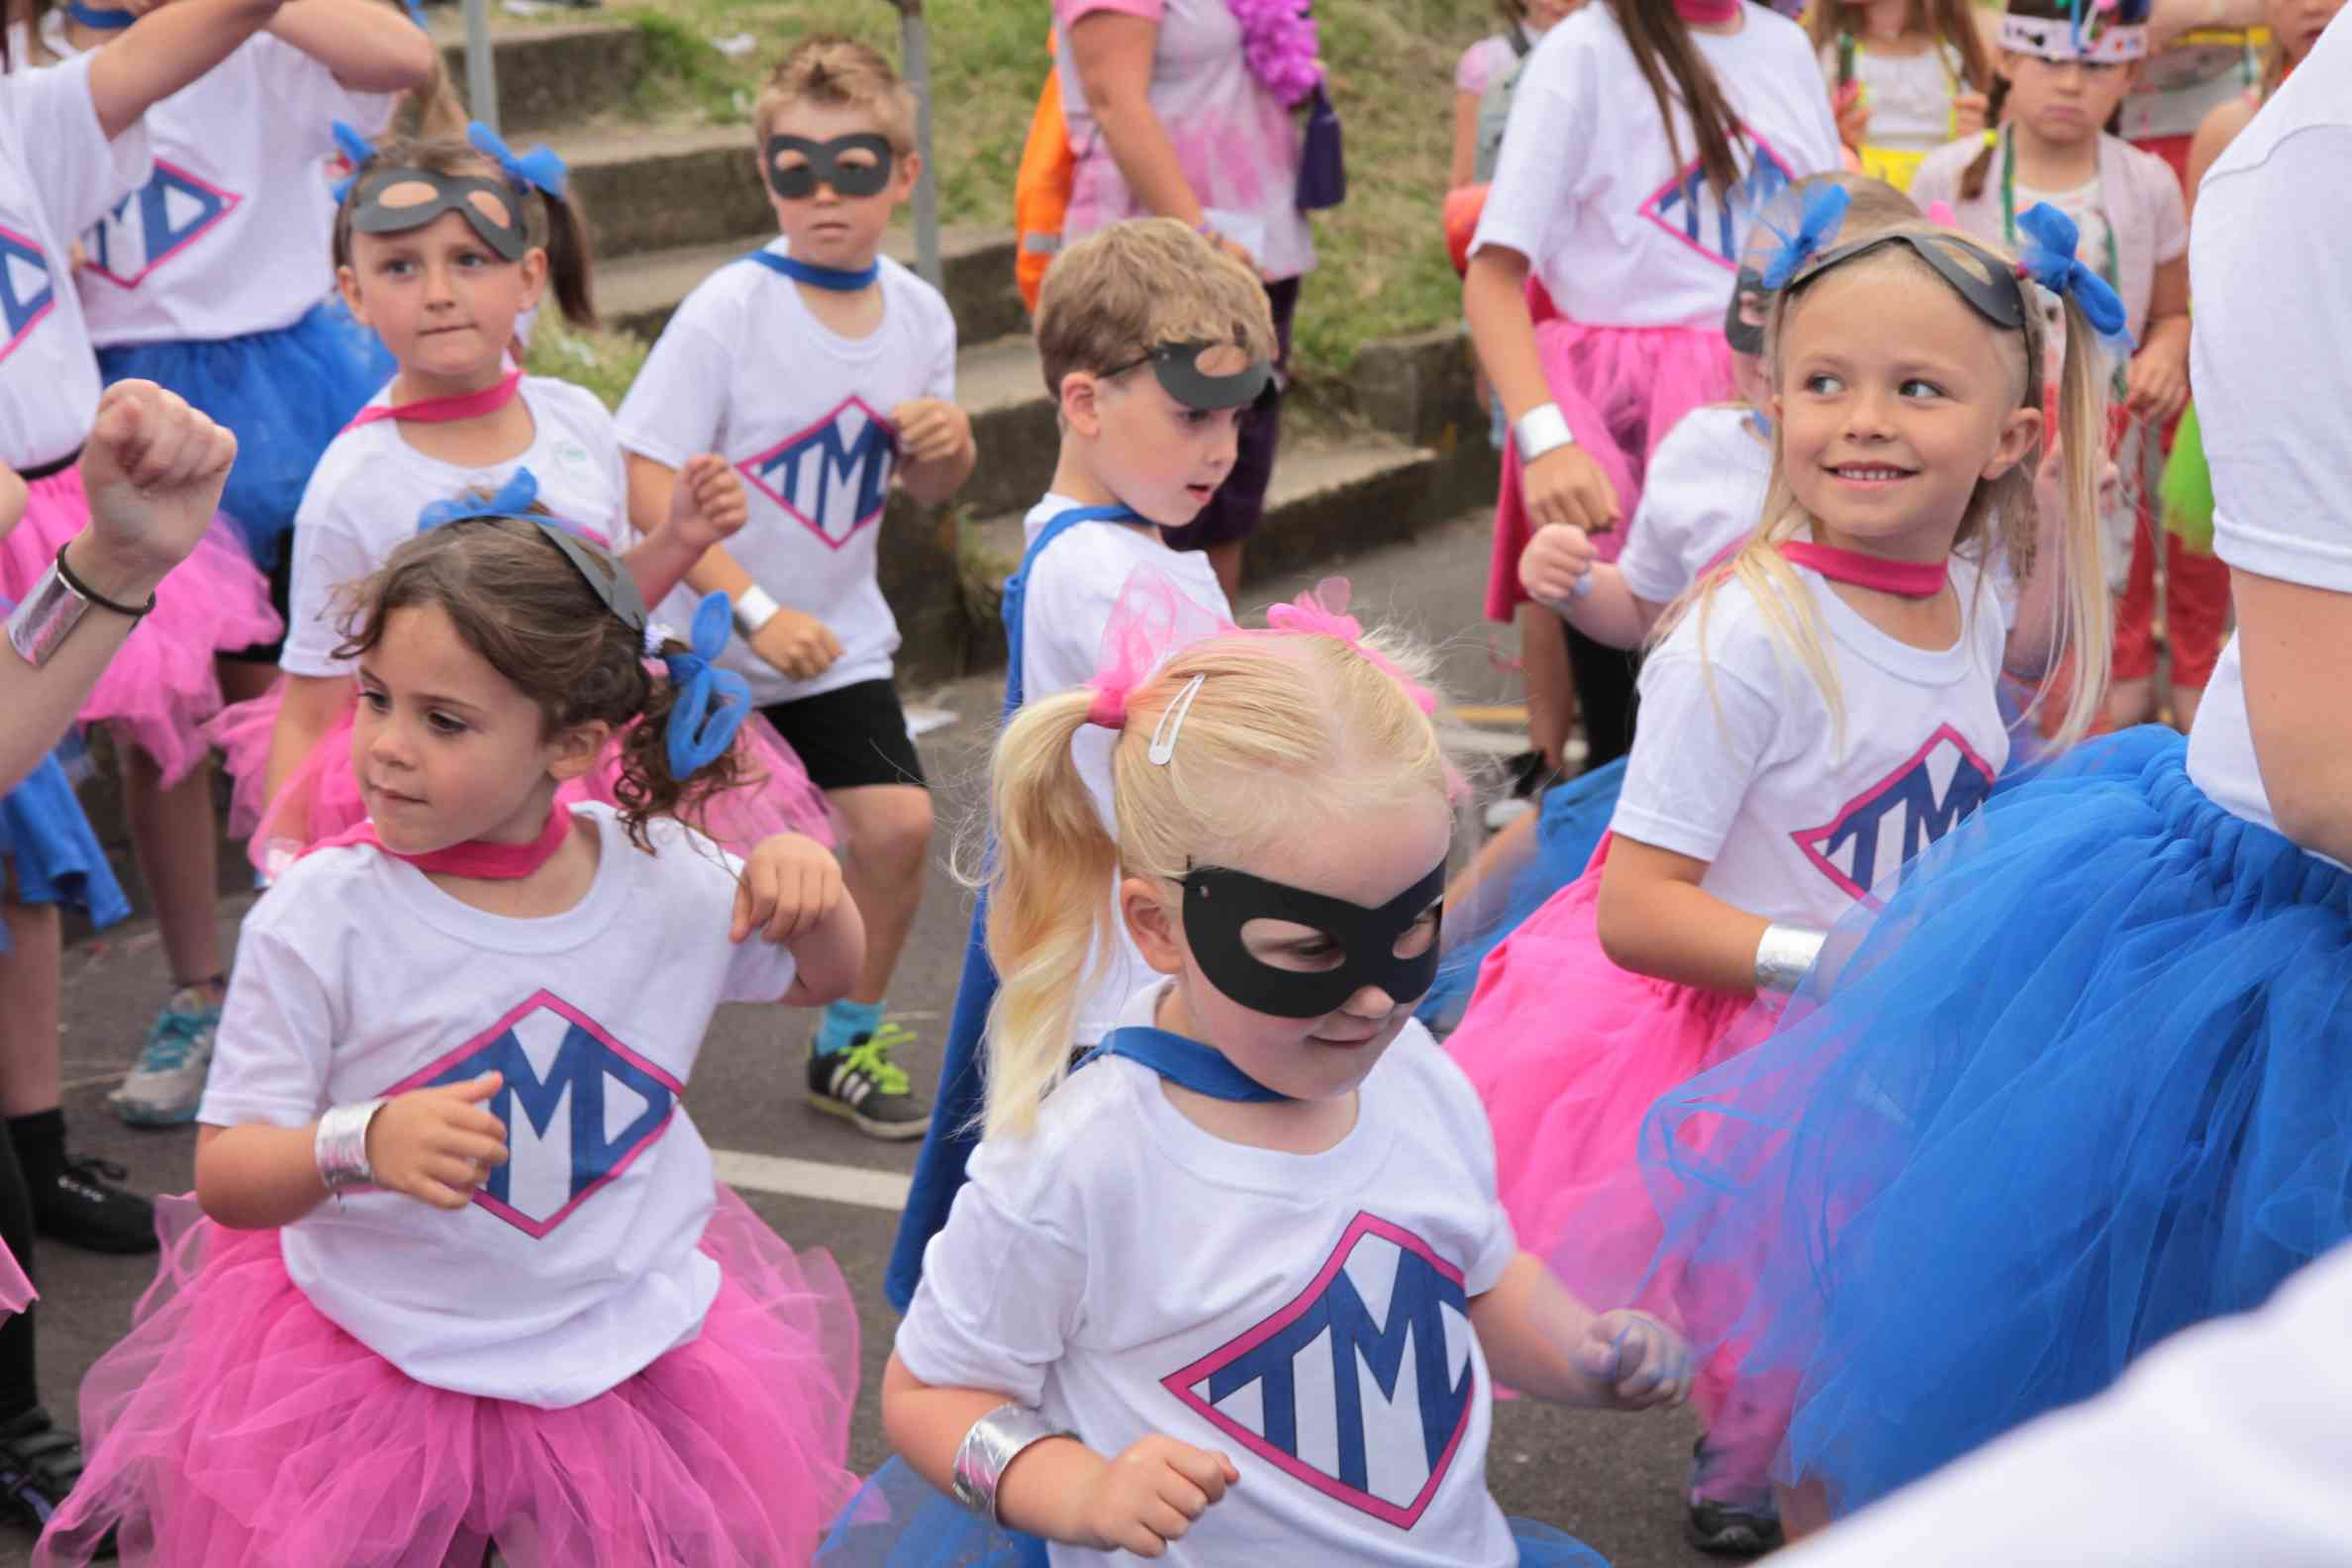 Children in costume for a super hero dance party